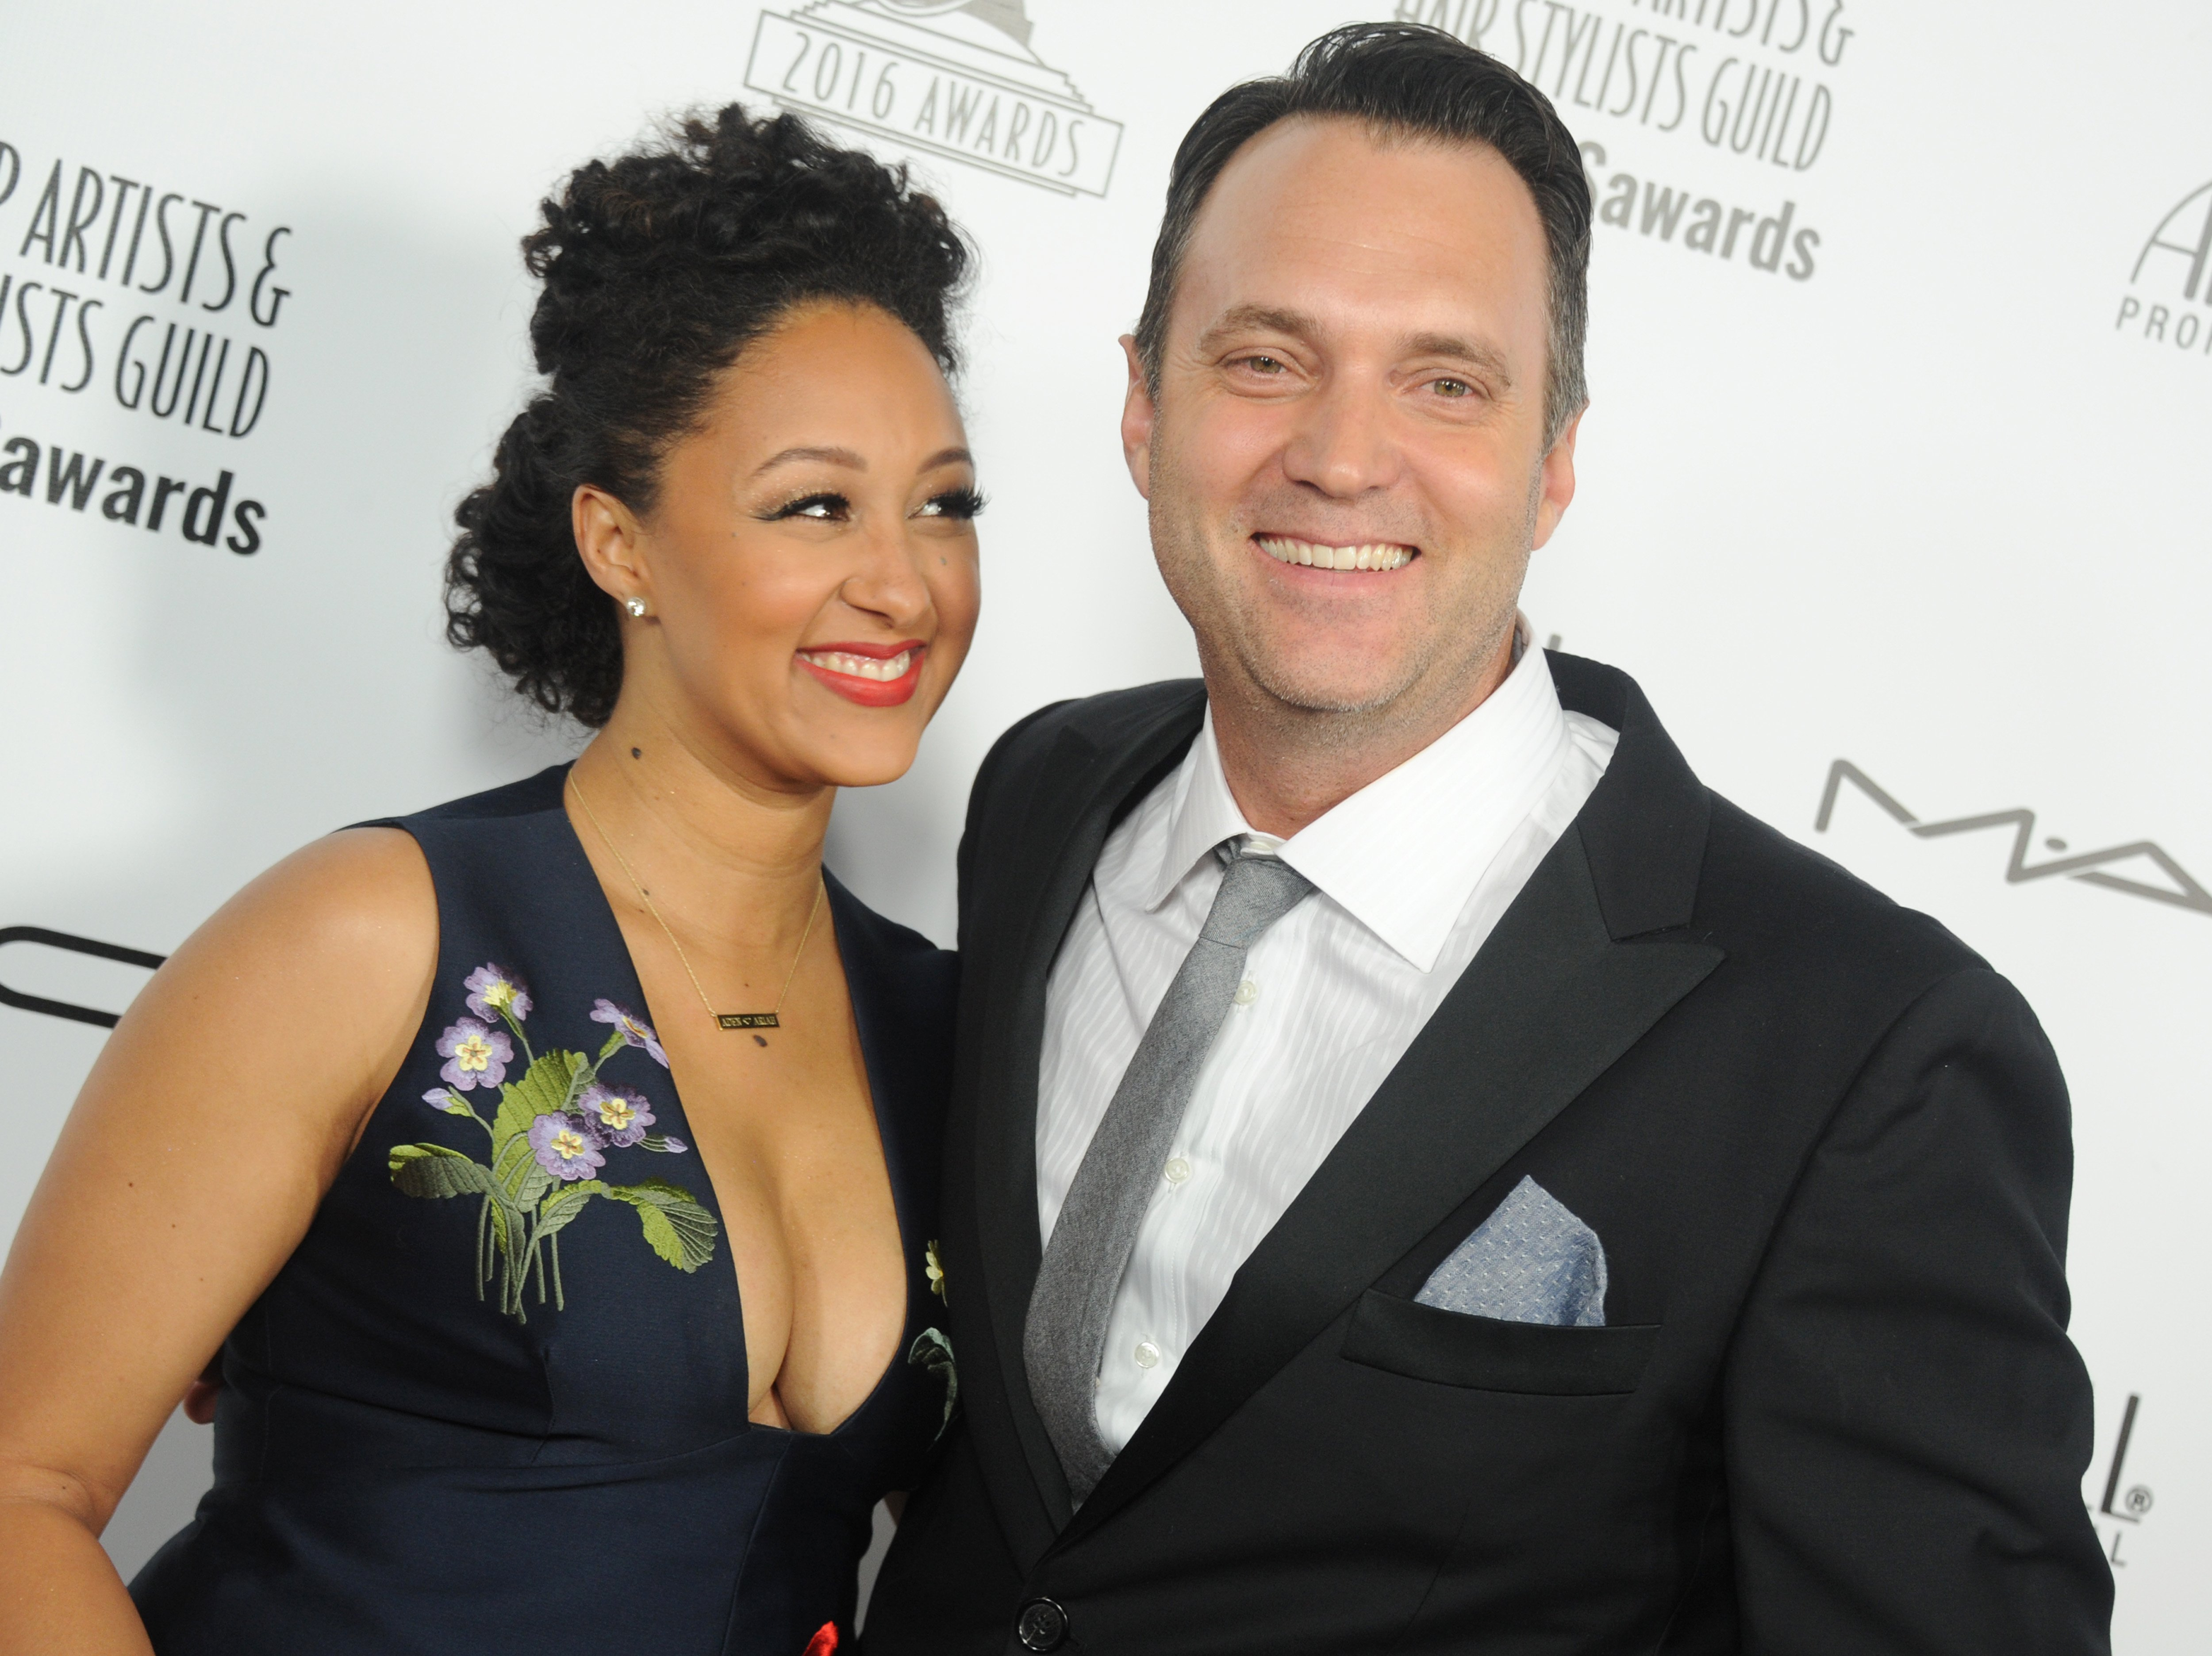 Tamera Mowry-Housley and Adam Housley at the Make-Up Artists And Hair Stylists Guild Awards on Febr. 20, 2016 in Hollywood, California. |Photo: Getty Images